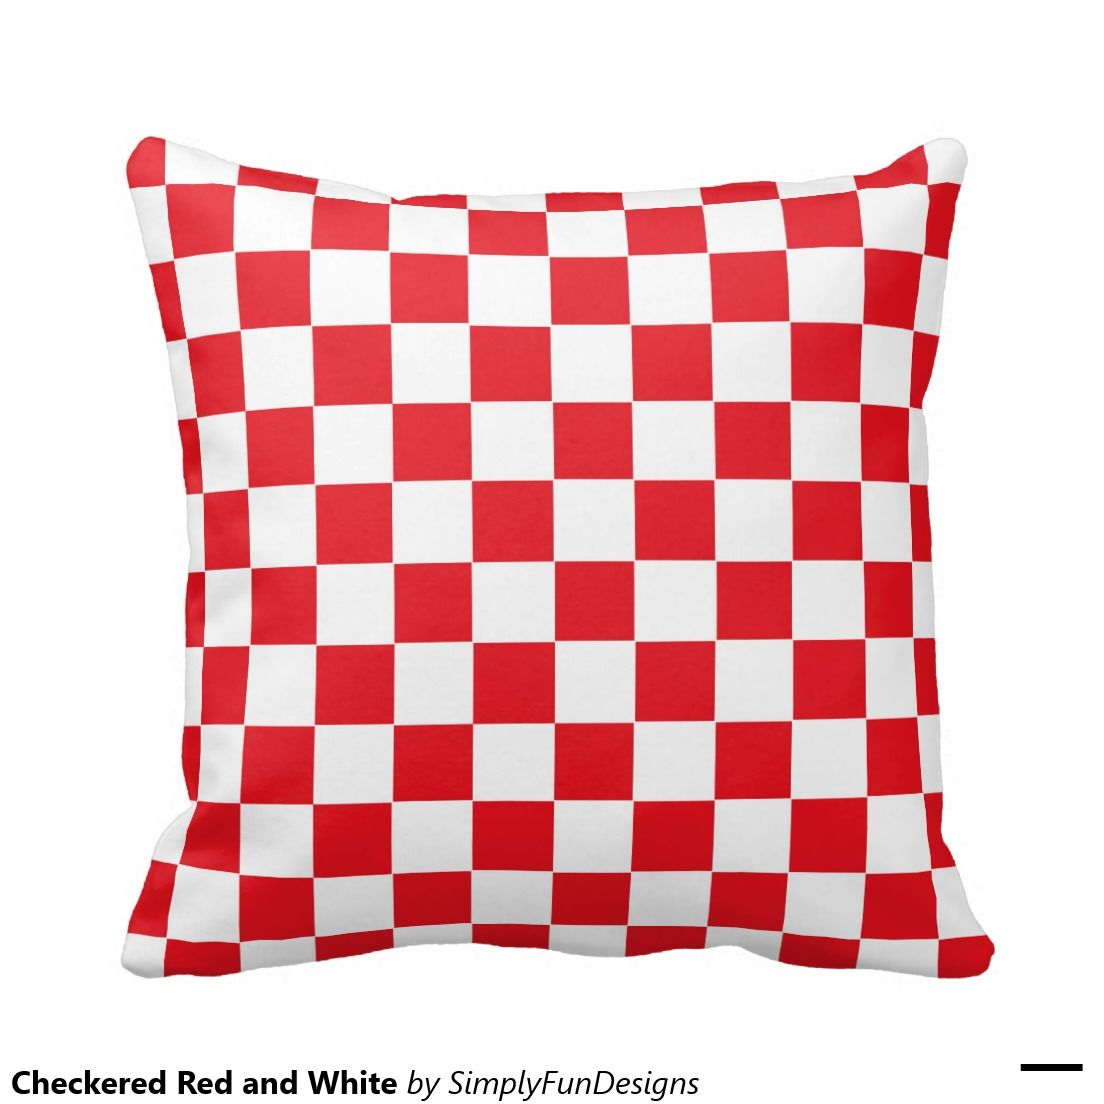 Checkered Red and White Pillows